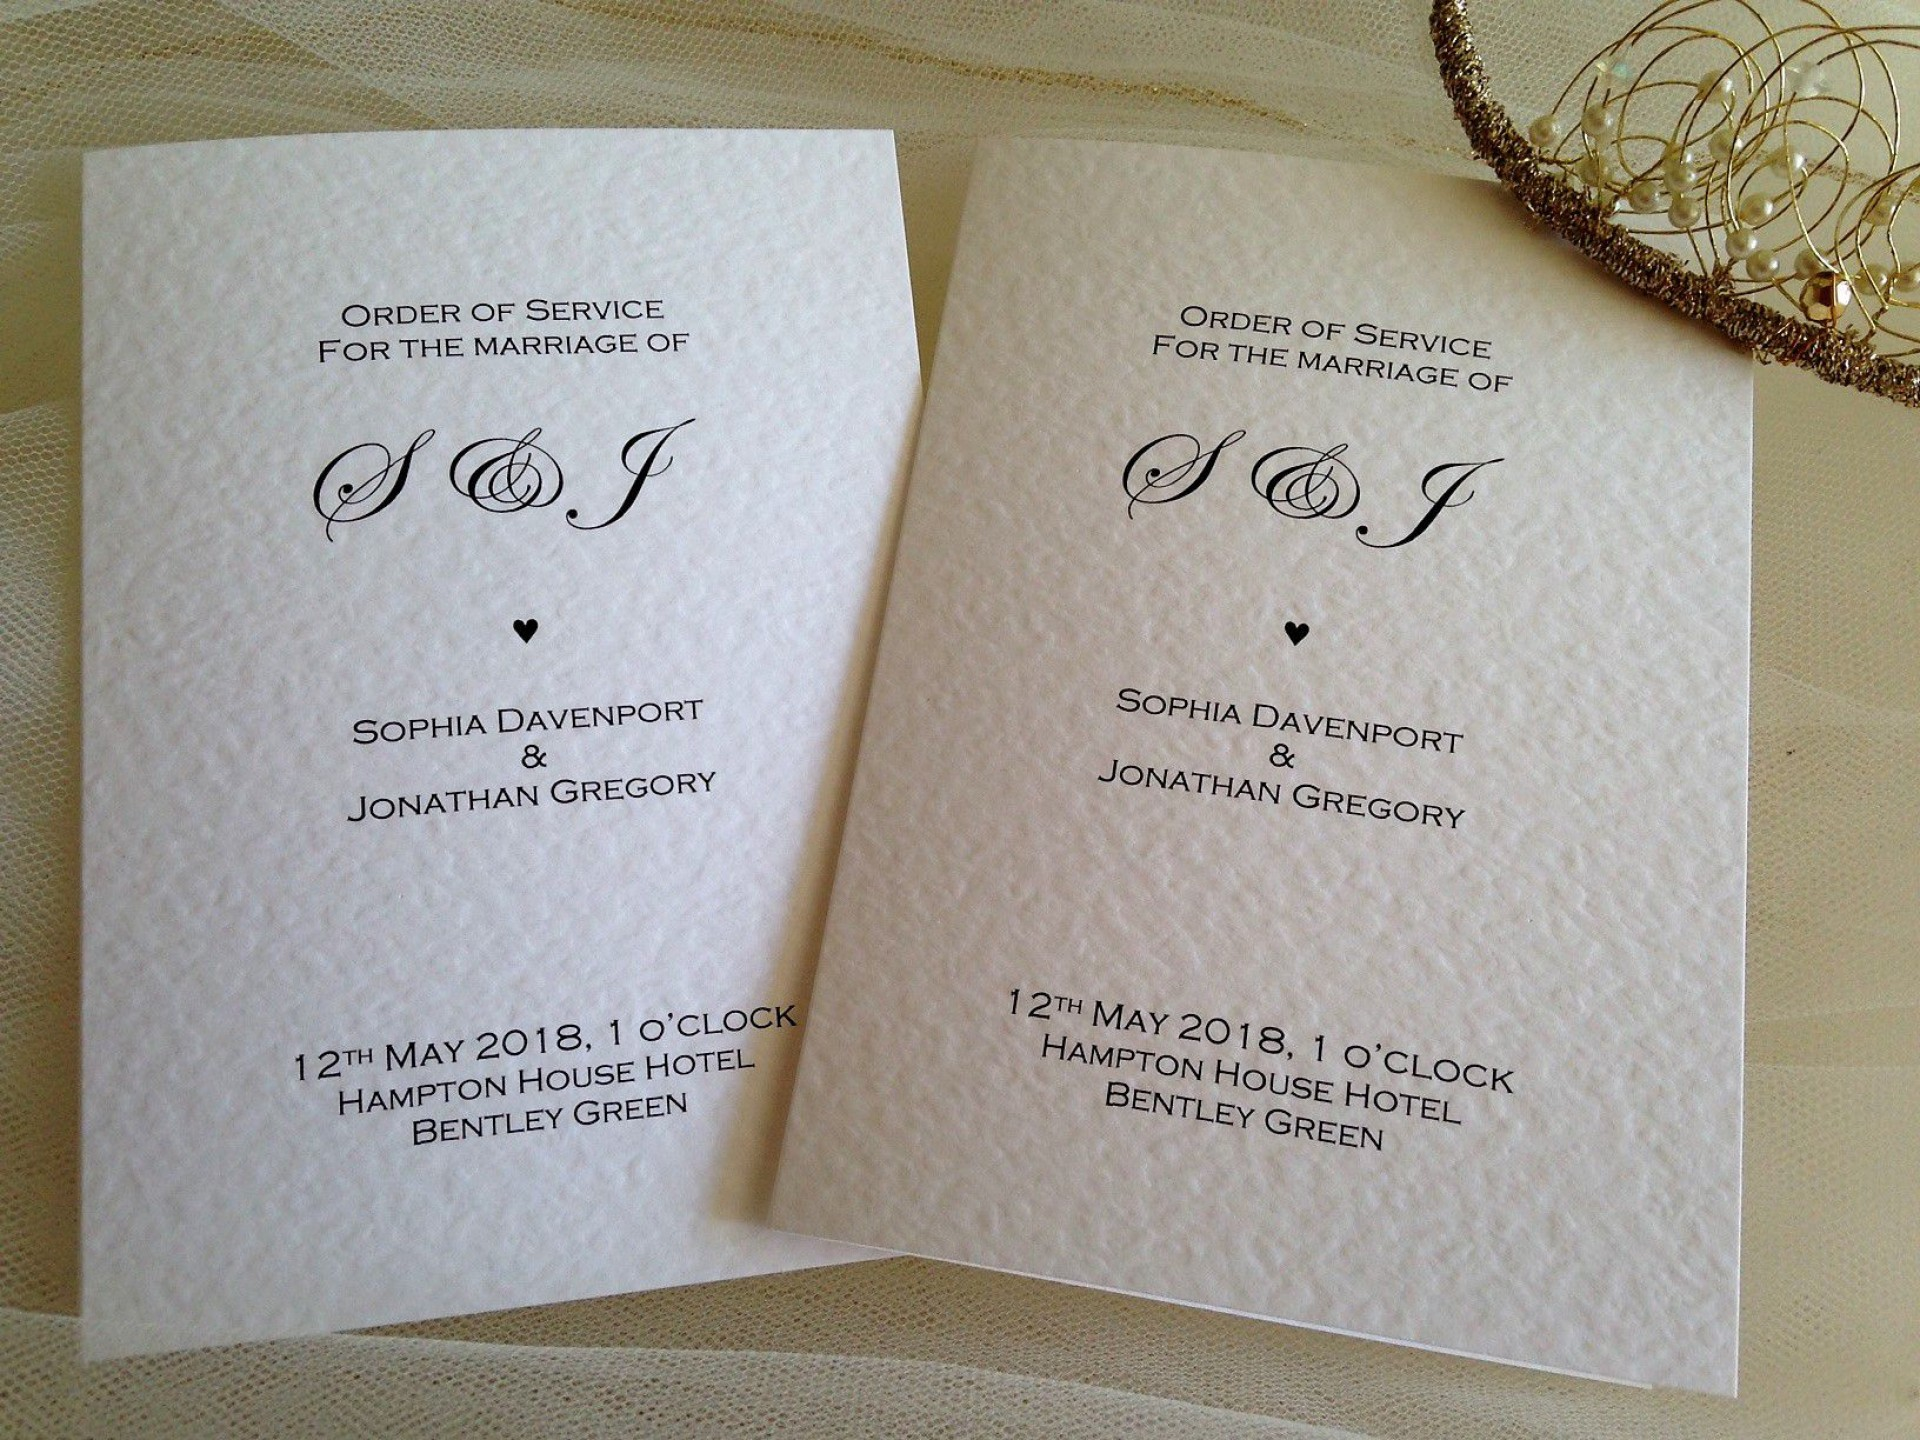 005 Fearsome Wedding Order Of Service Template High Definition  Church Free Microsoft Word Download1920